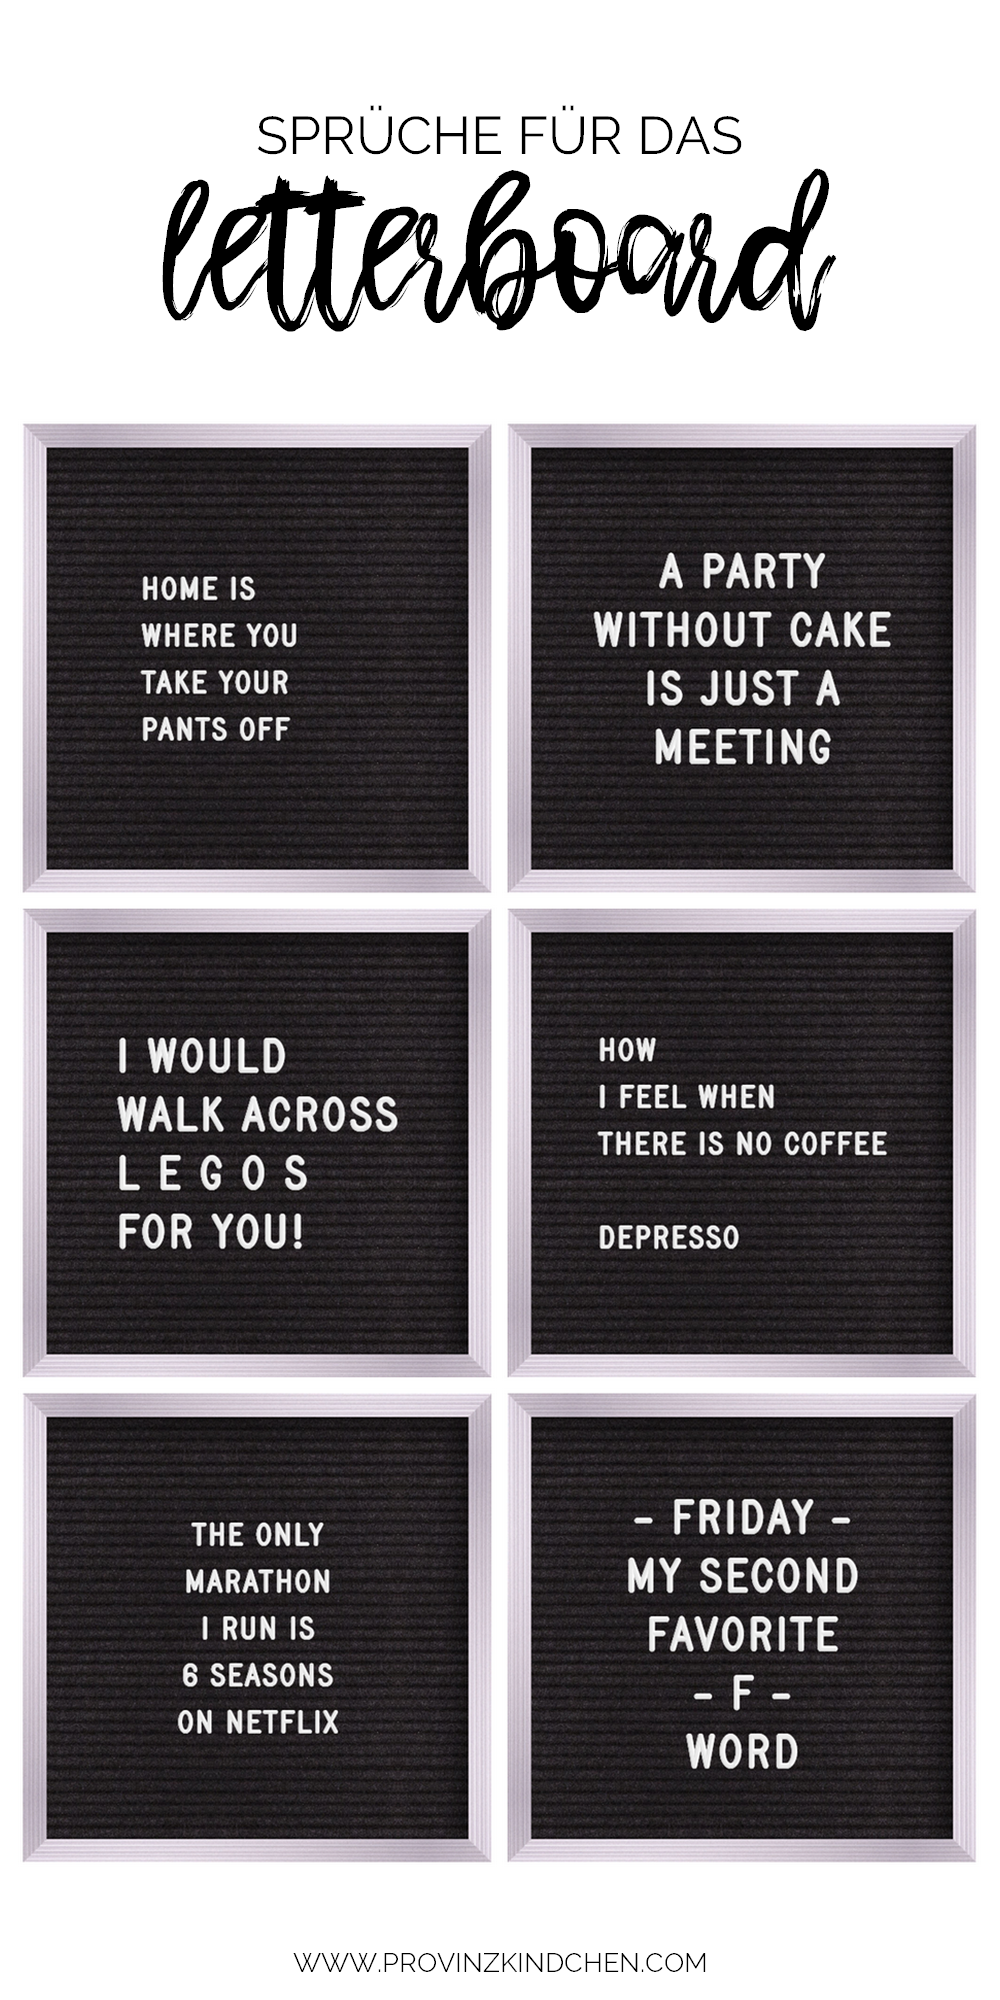 Funny Board Quotes : funny, board, quotes, Sprüche, Letterboard, Provinzkindchen, Letterboard,, Witzige, Briefe,, Words